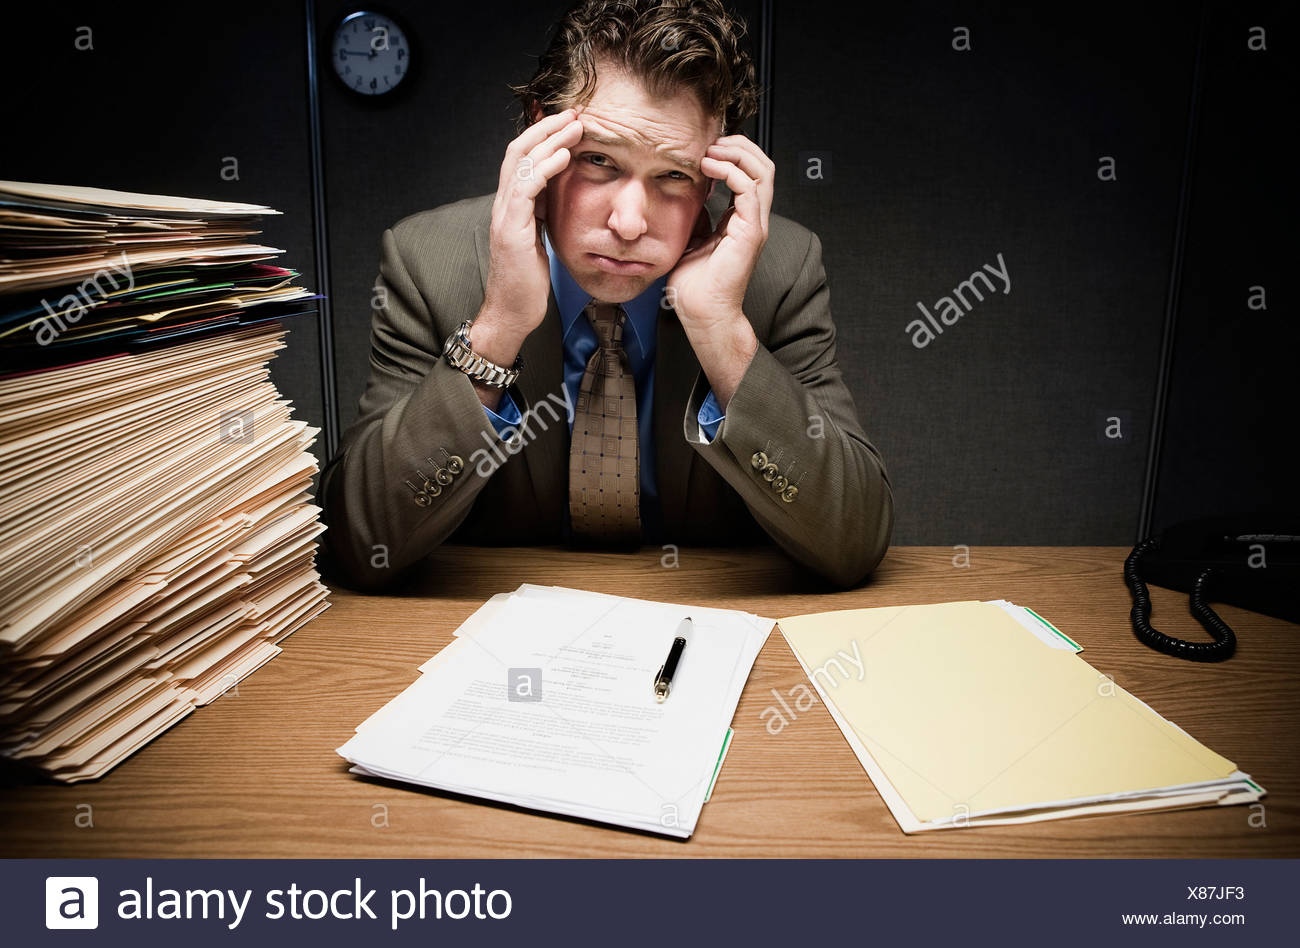 Stressed man at desk with paperwork - Stock Image